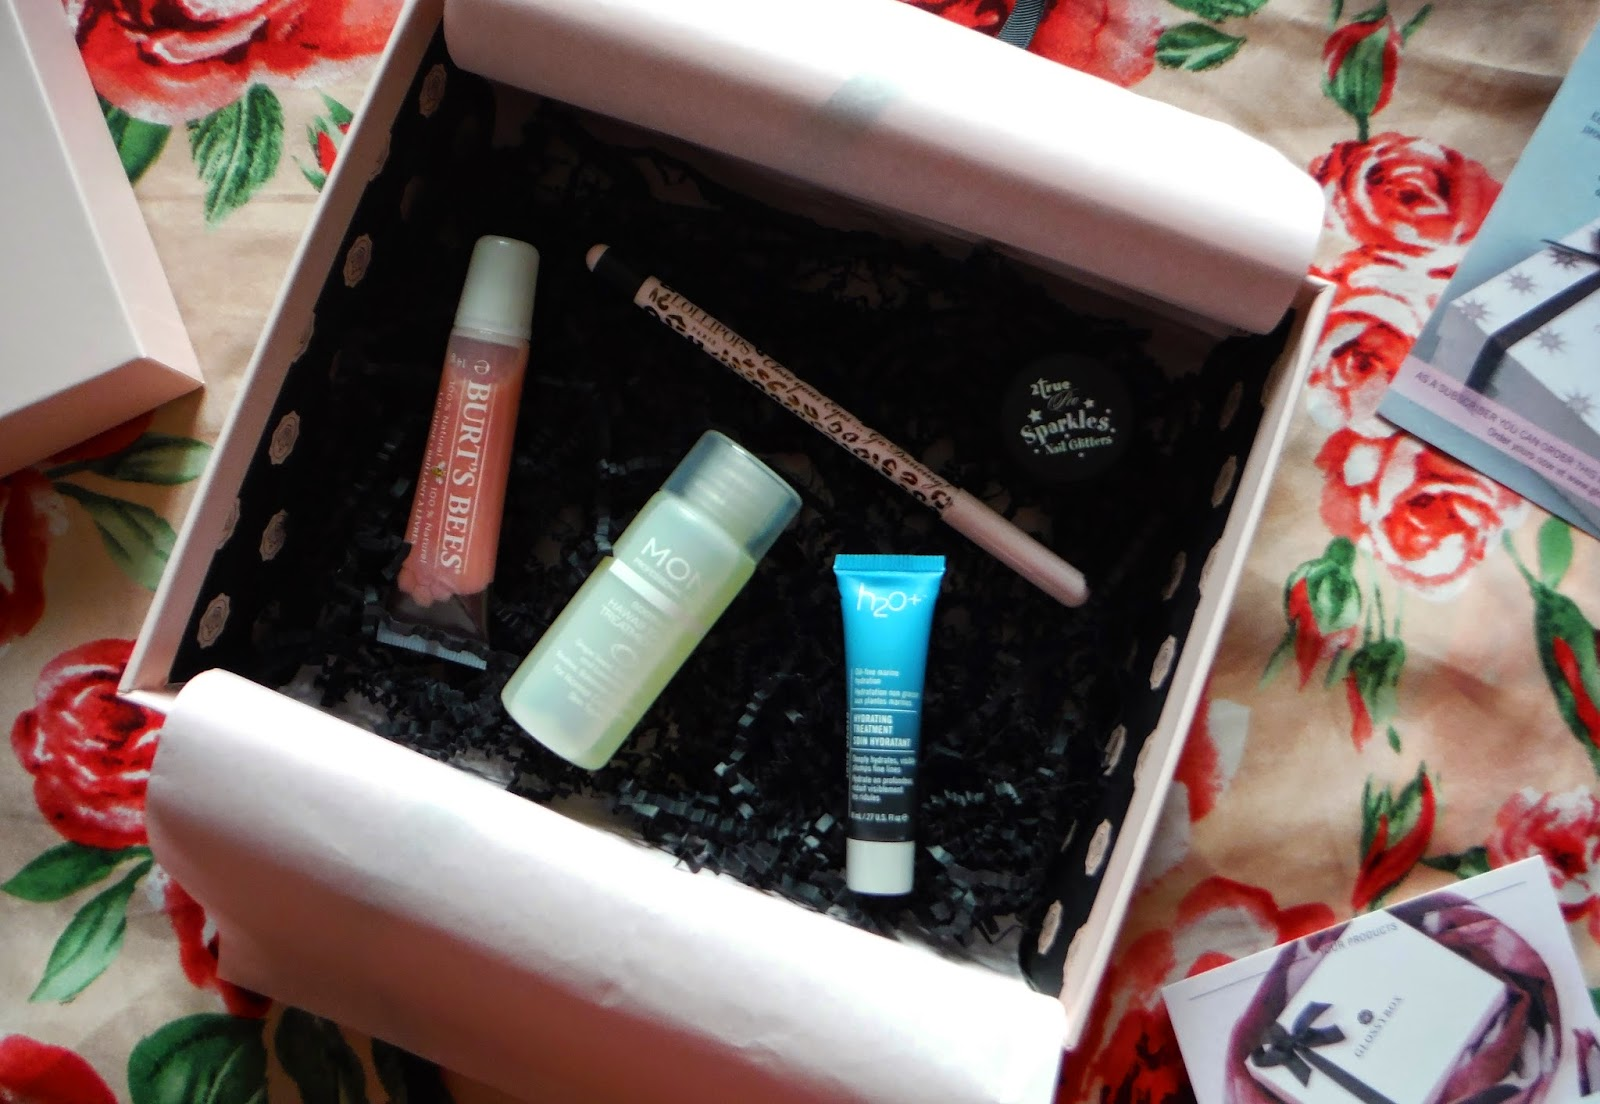 inside the November Glossybox with the beauty products on show